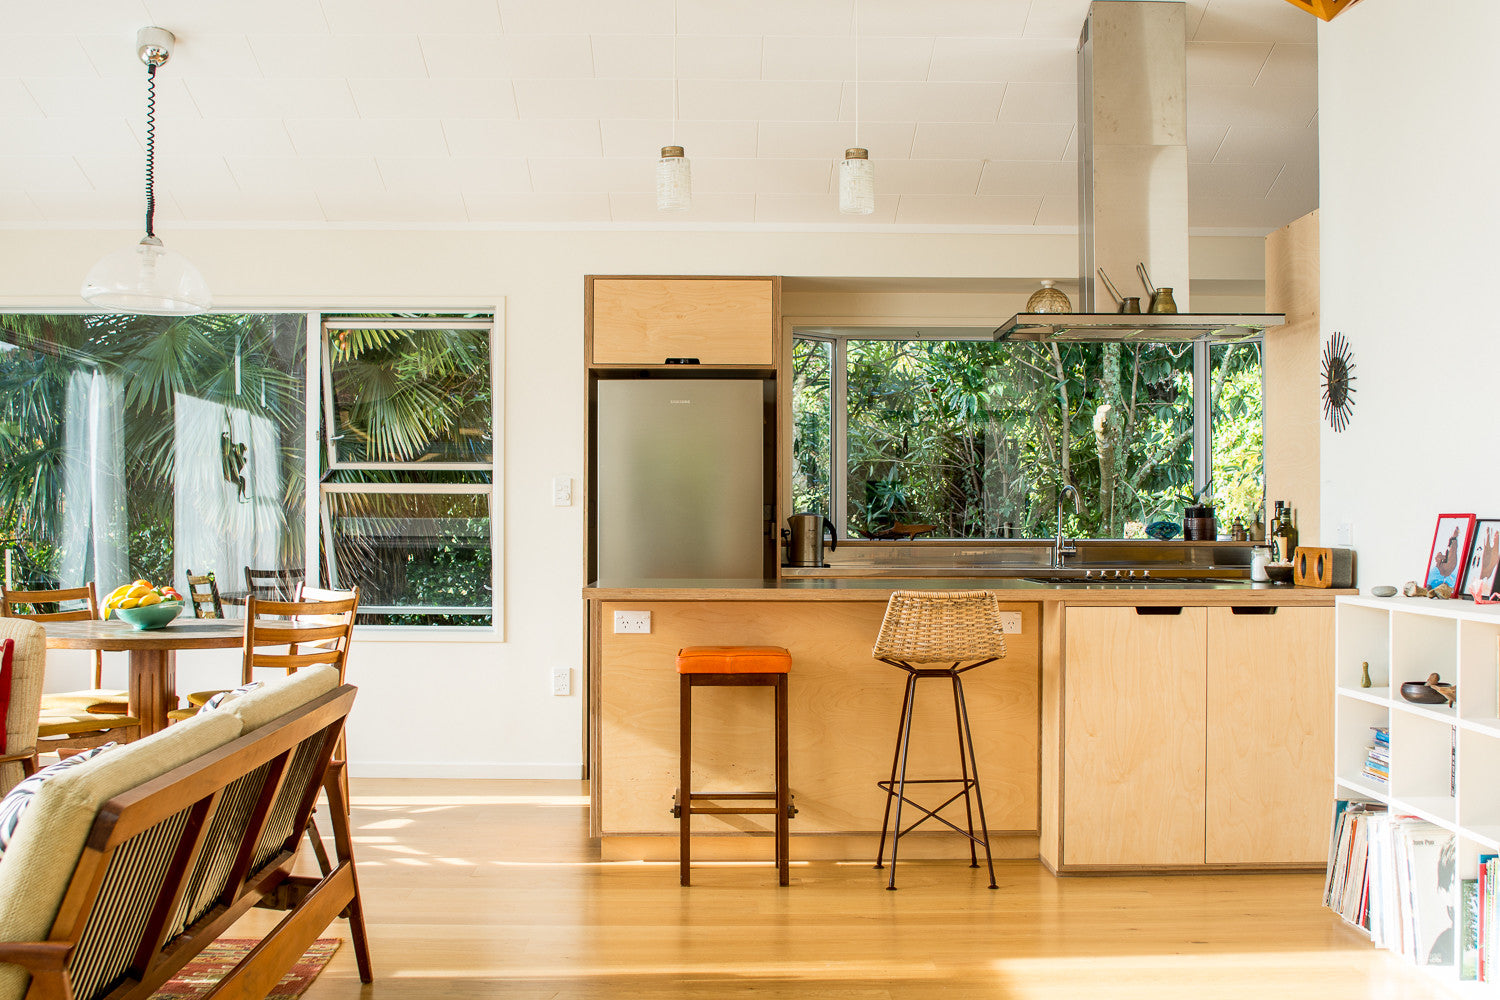 make furniture custom plywood kitchens furniture and commercial fitouts